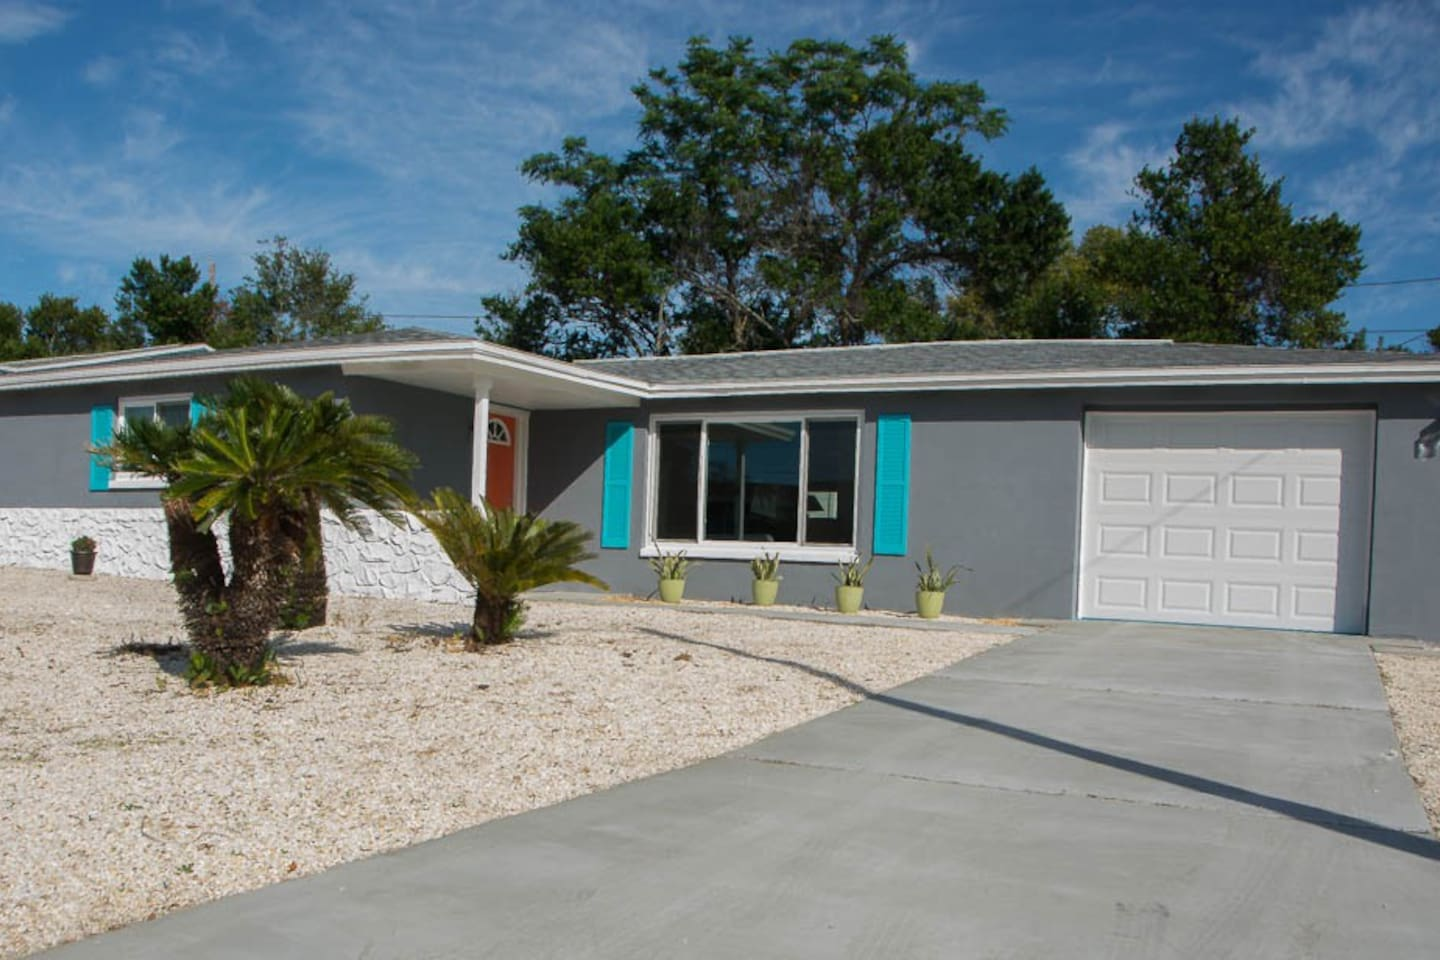 01_Dragged Kicking & Screaming Into The 21st Century, Enjoy This Fully Renovated & Updated Mid-Century Modern Classic.